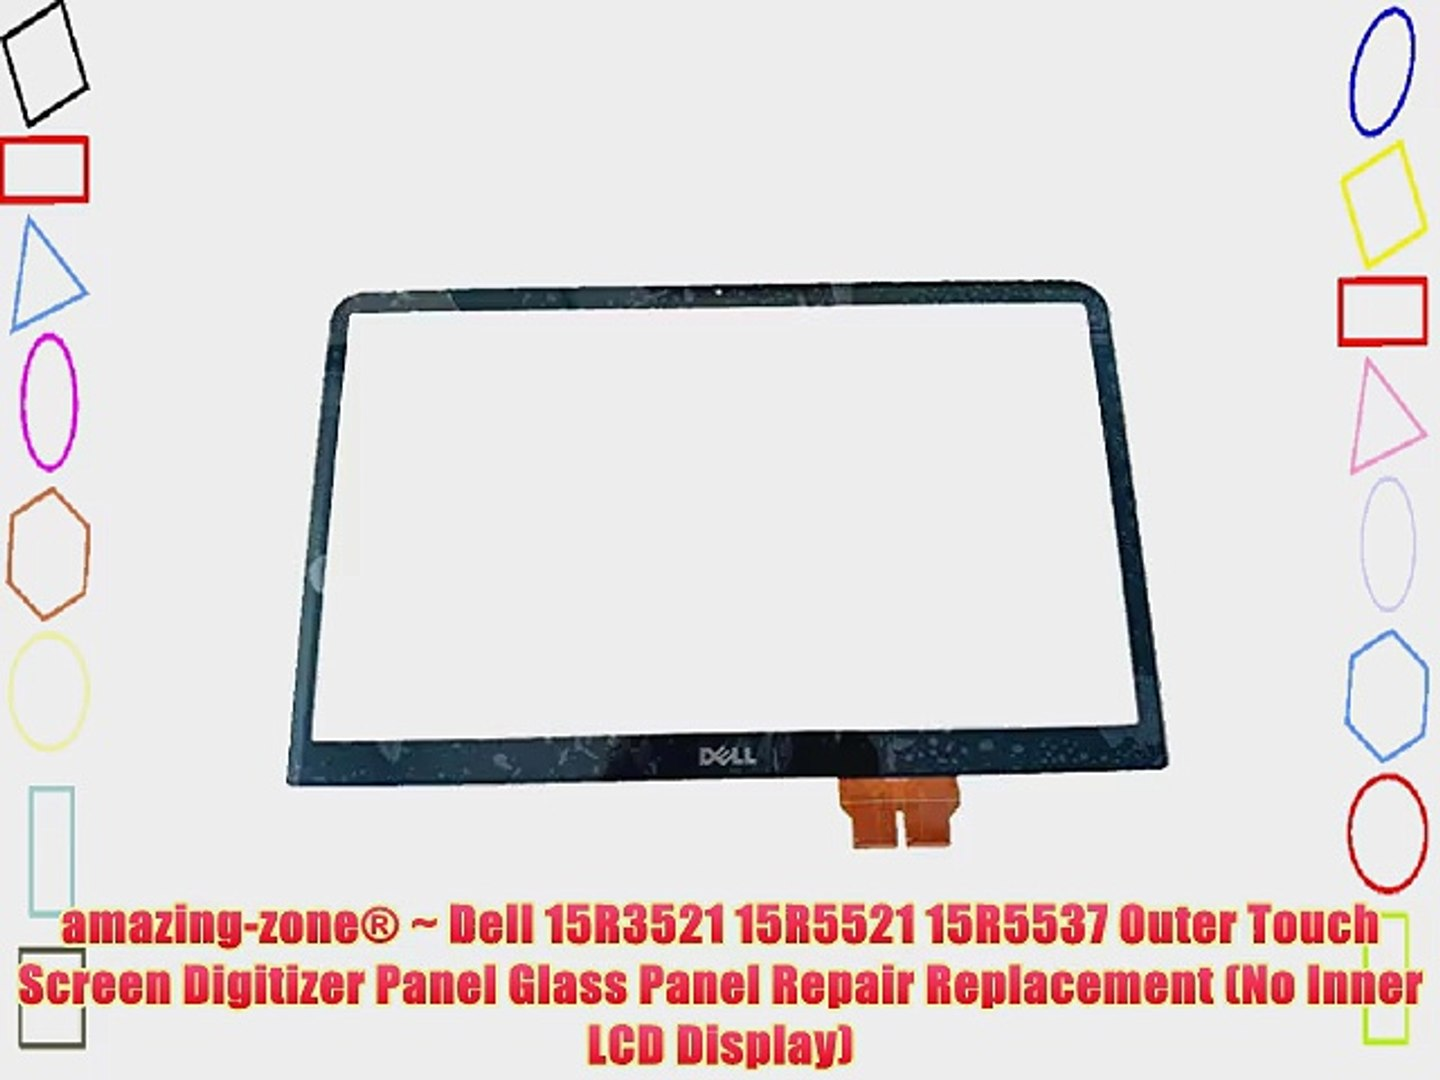 amazing-zone? ~ Dell 15R3521 15R5521 15R5537 Outer Touch Screen Digitizer Panel Glass Panel